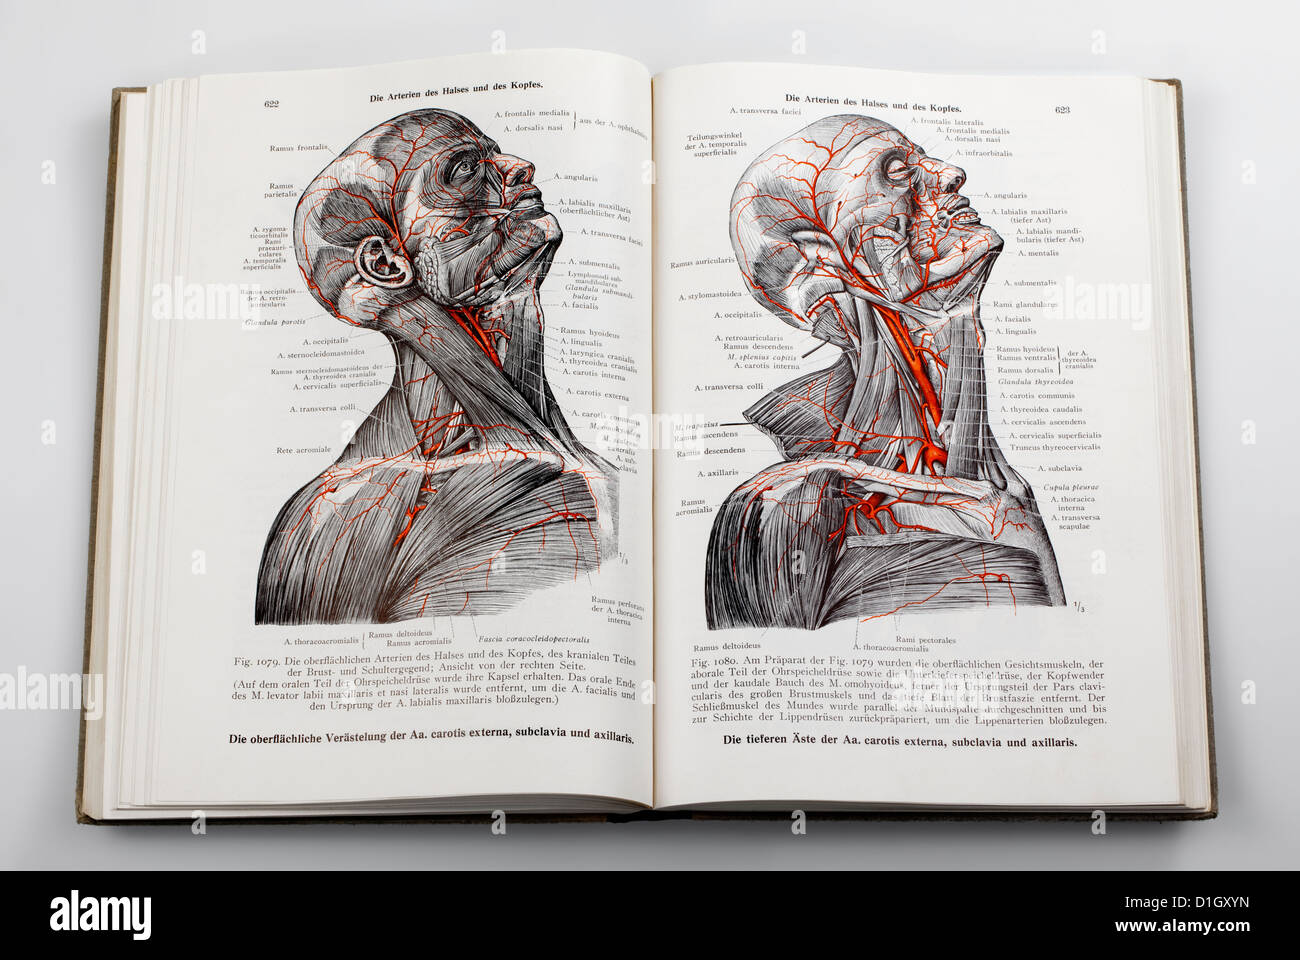 Woodcuts in a medical textbook, illustration of the nerves and arteries in the human head, - Stock Image